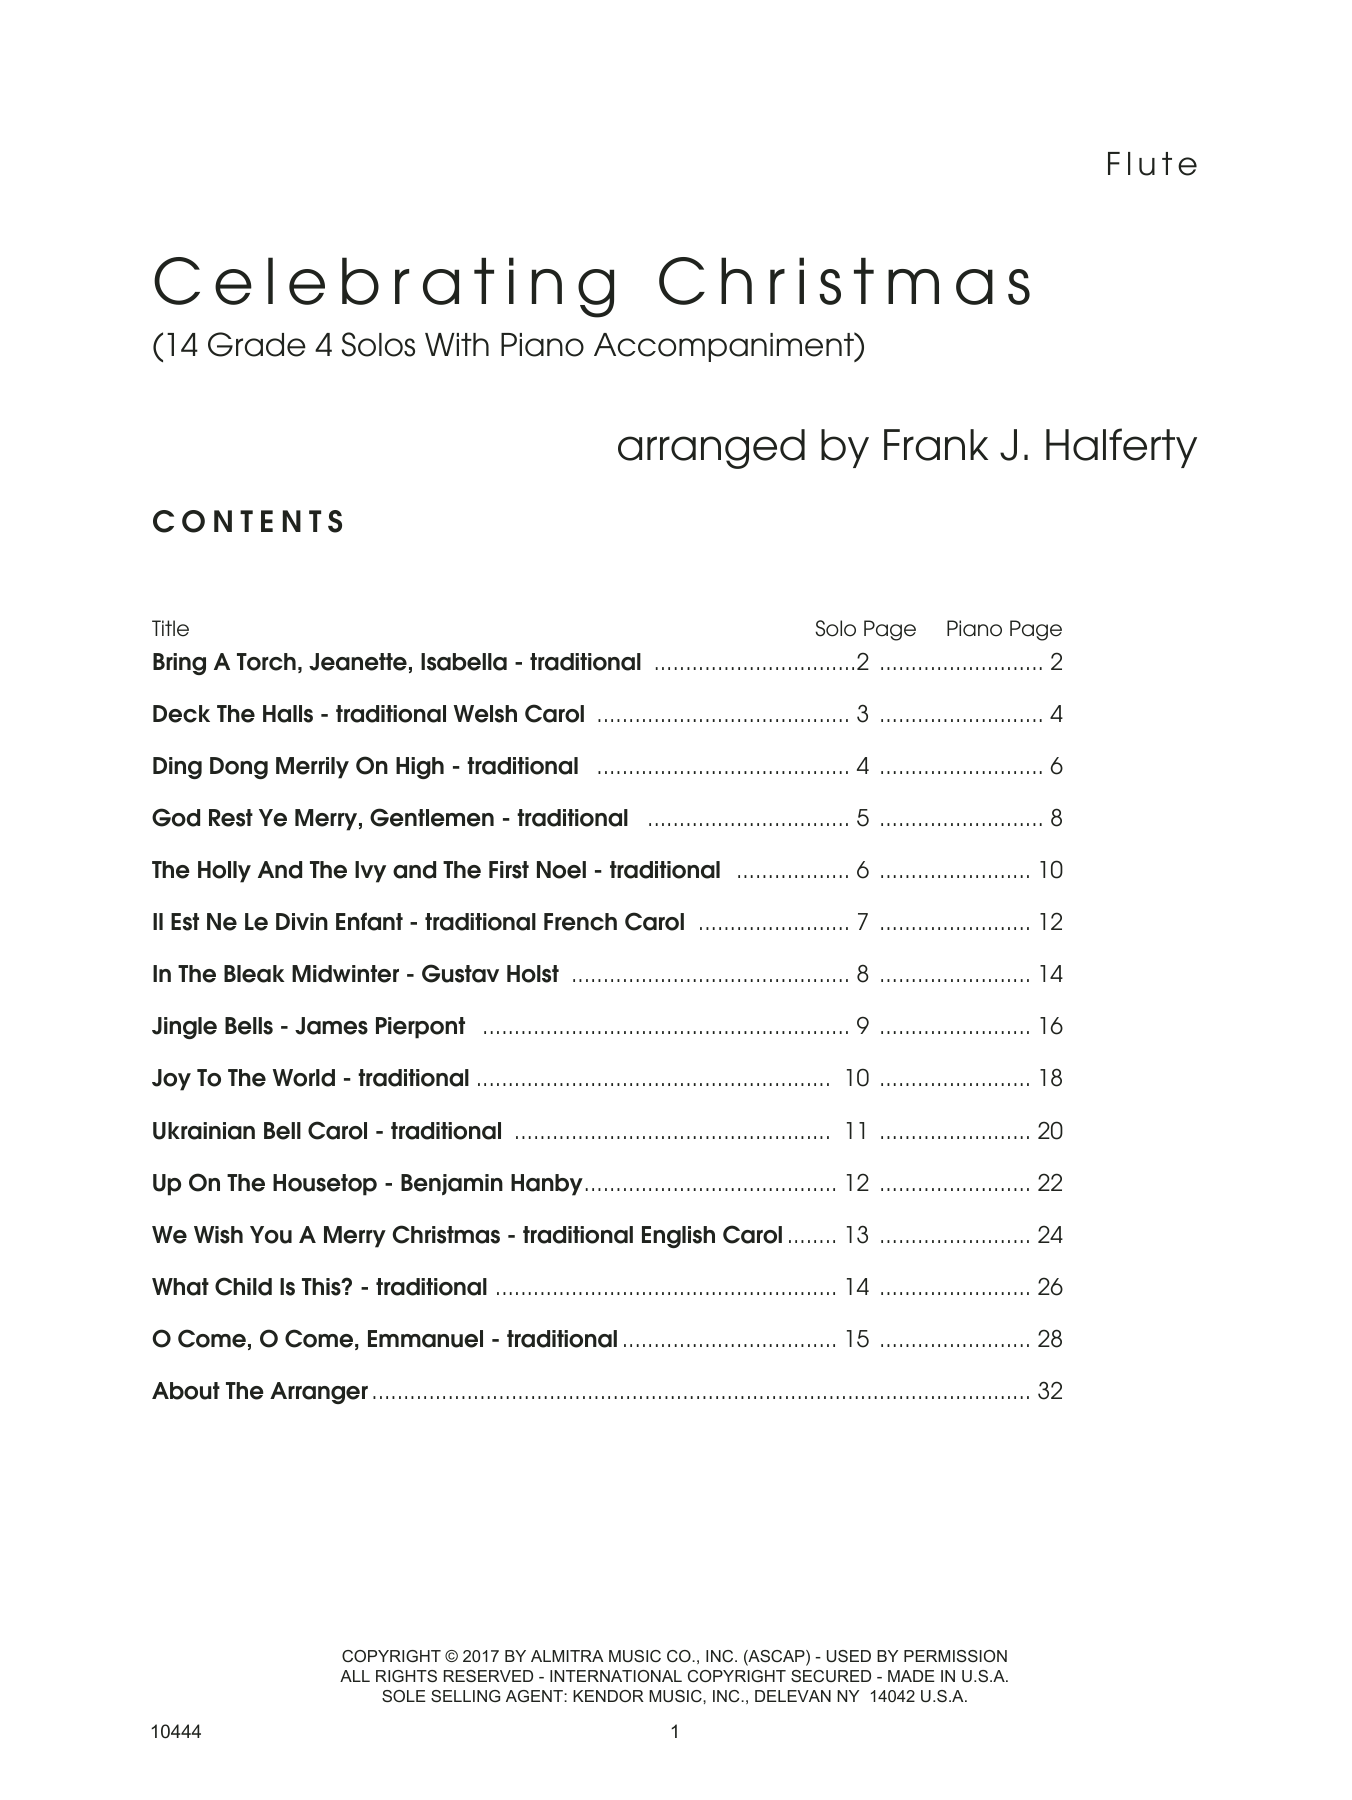 Frank J. Halferty Celebrating Christmas (14 Grade 4 Solos With Piano Accompaniment) - Flute sheet music notes and chords. Download Printable PDF.